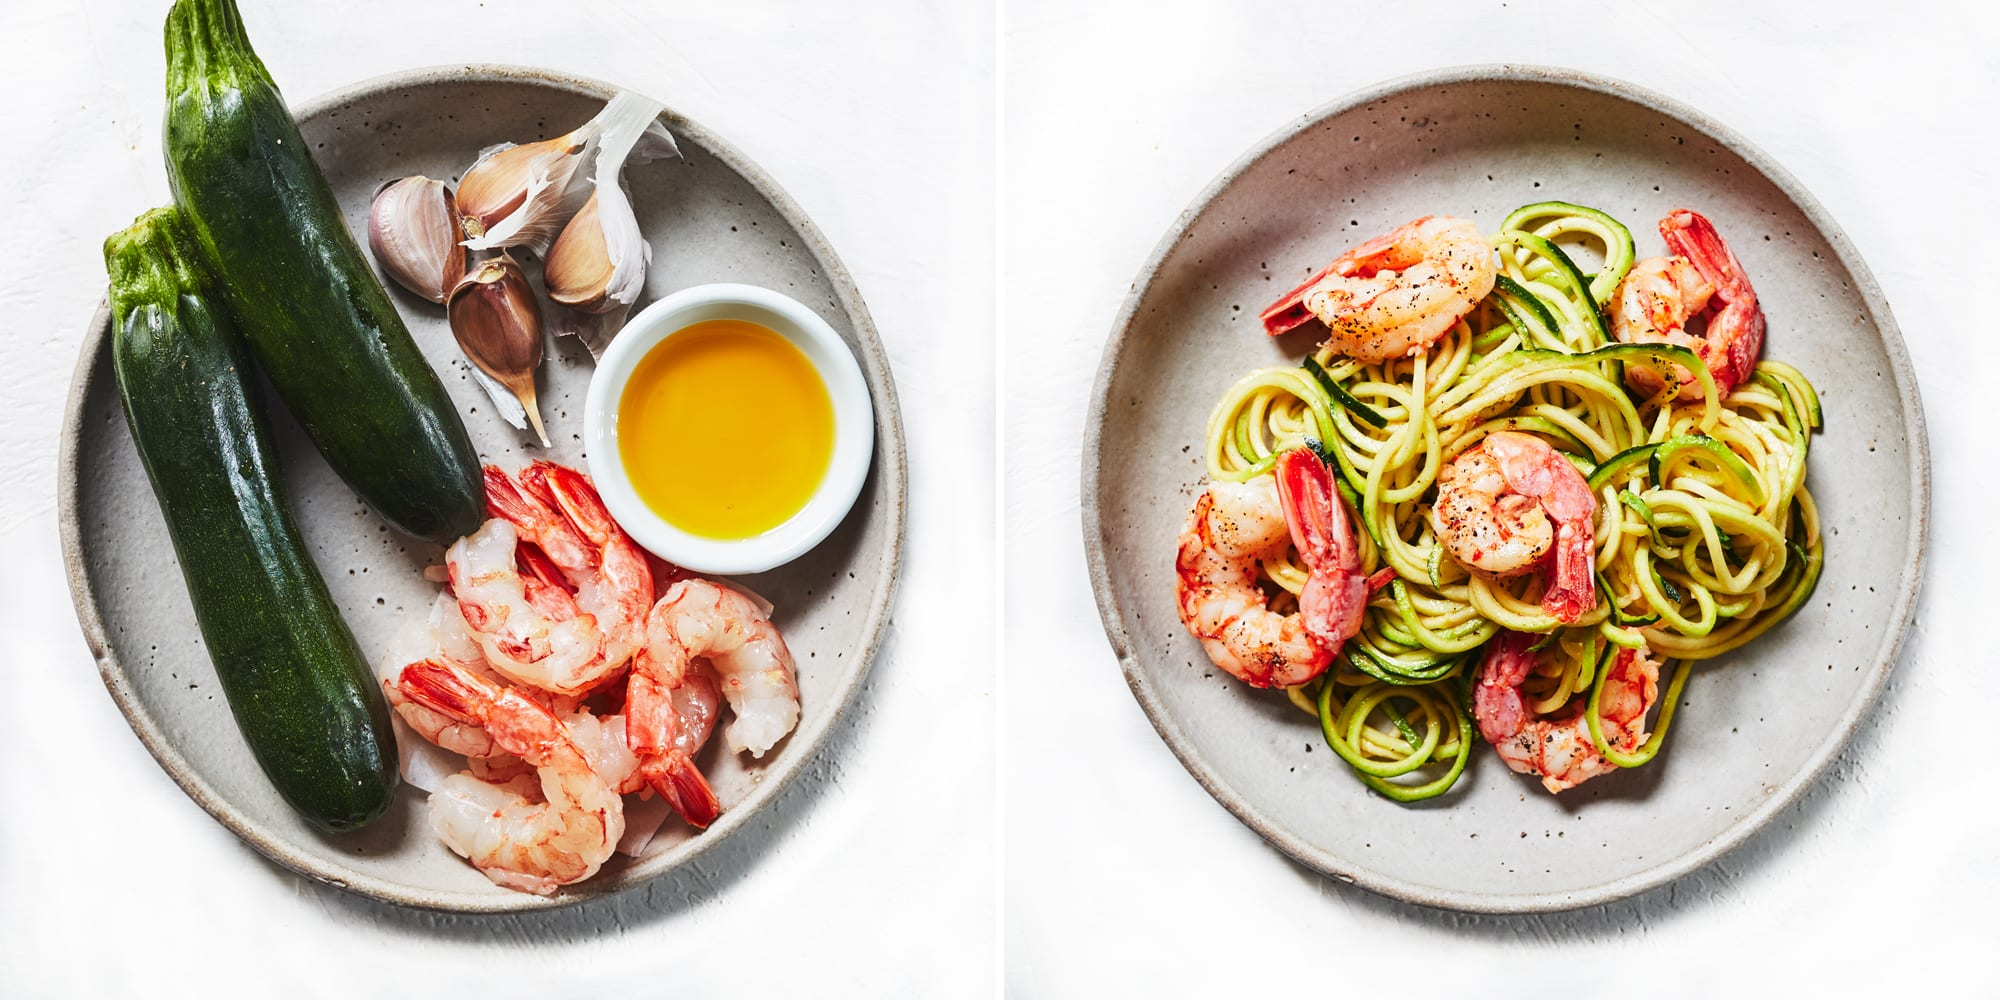 4-Ingredient Garlic Shrimp With Zucchini Noodles